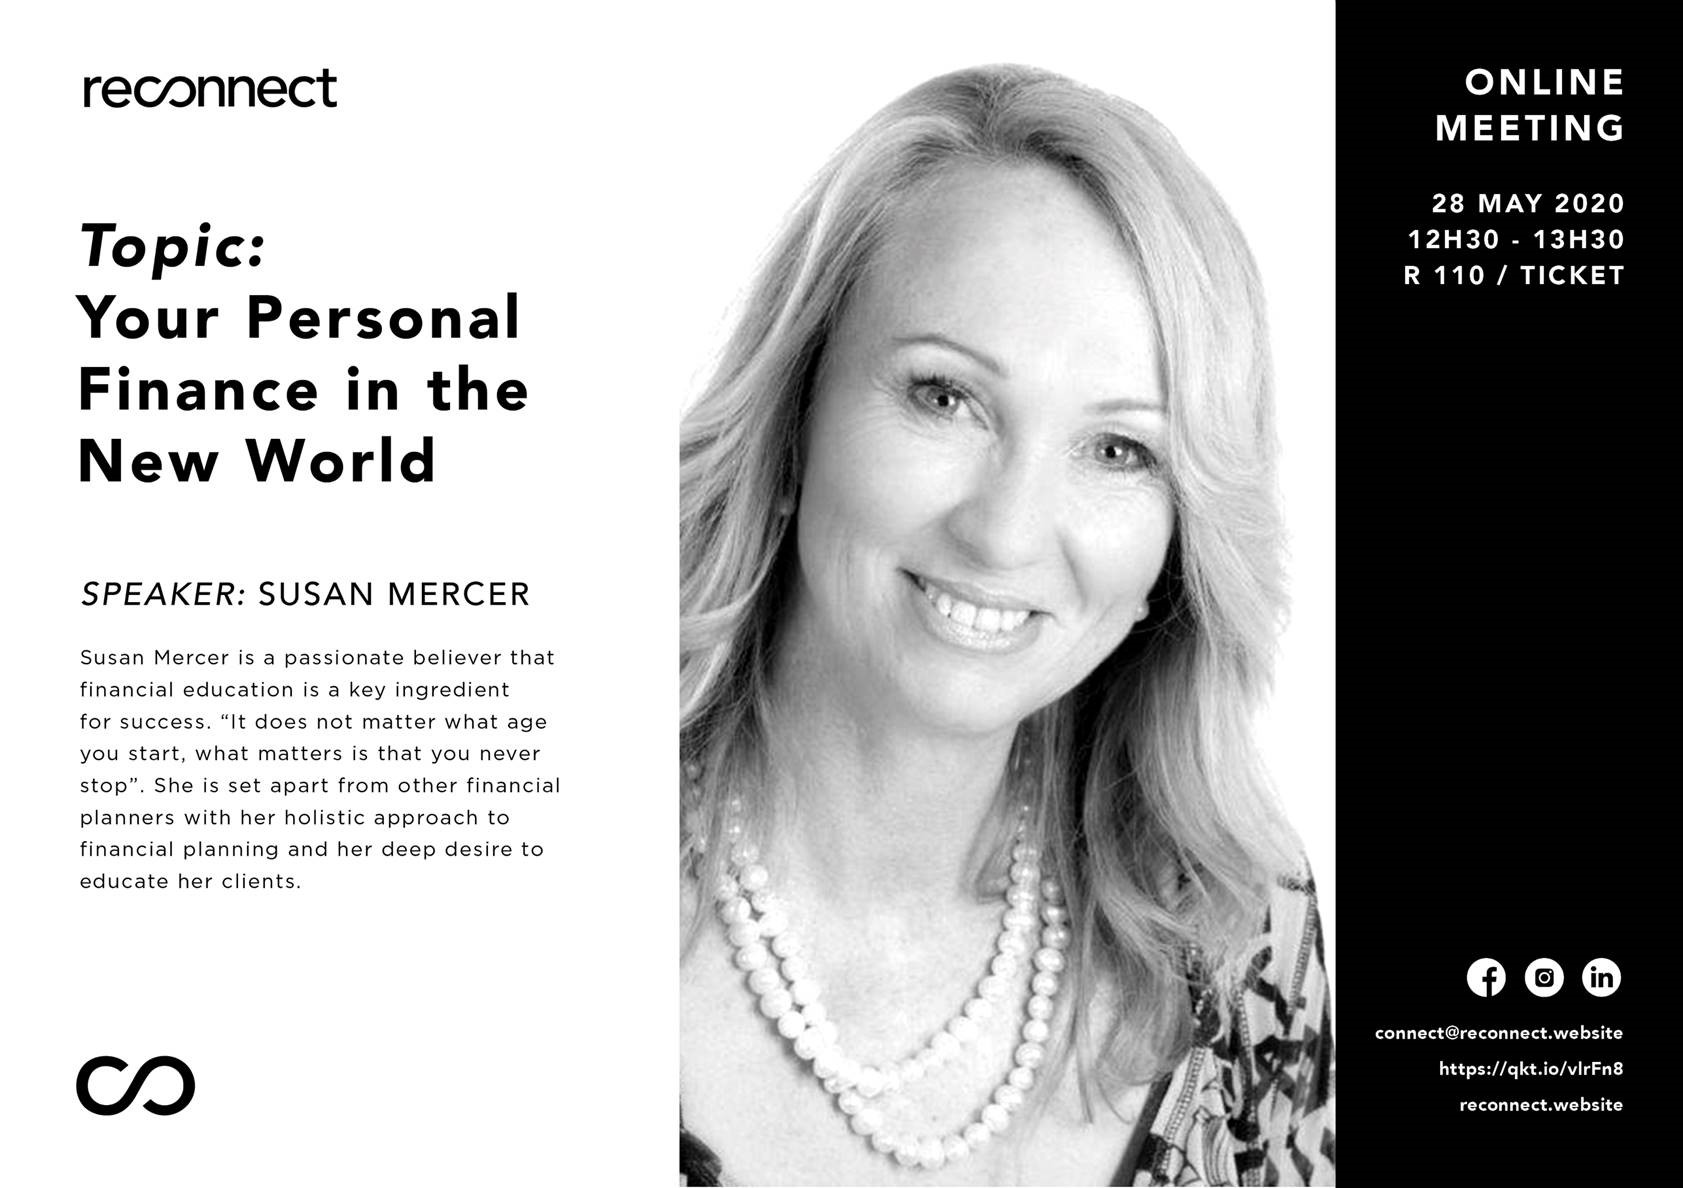 susan-mercer-online-meeting-finance-in-the-new-world